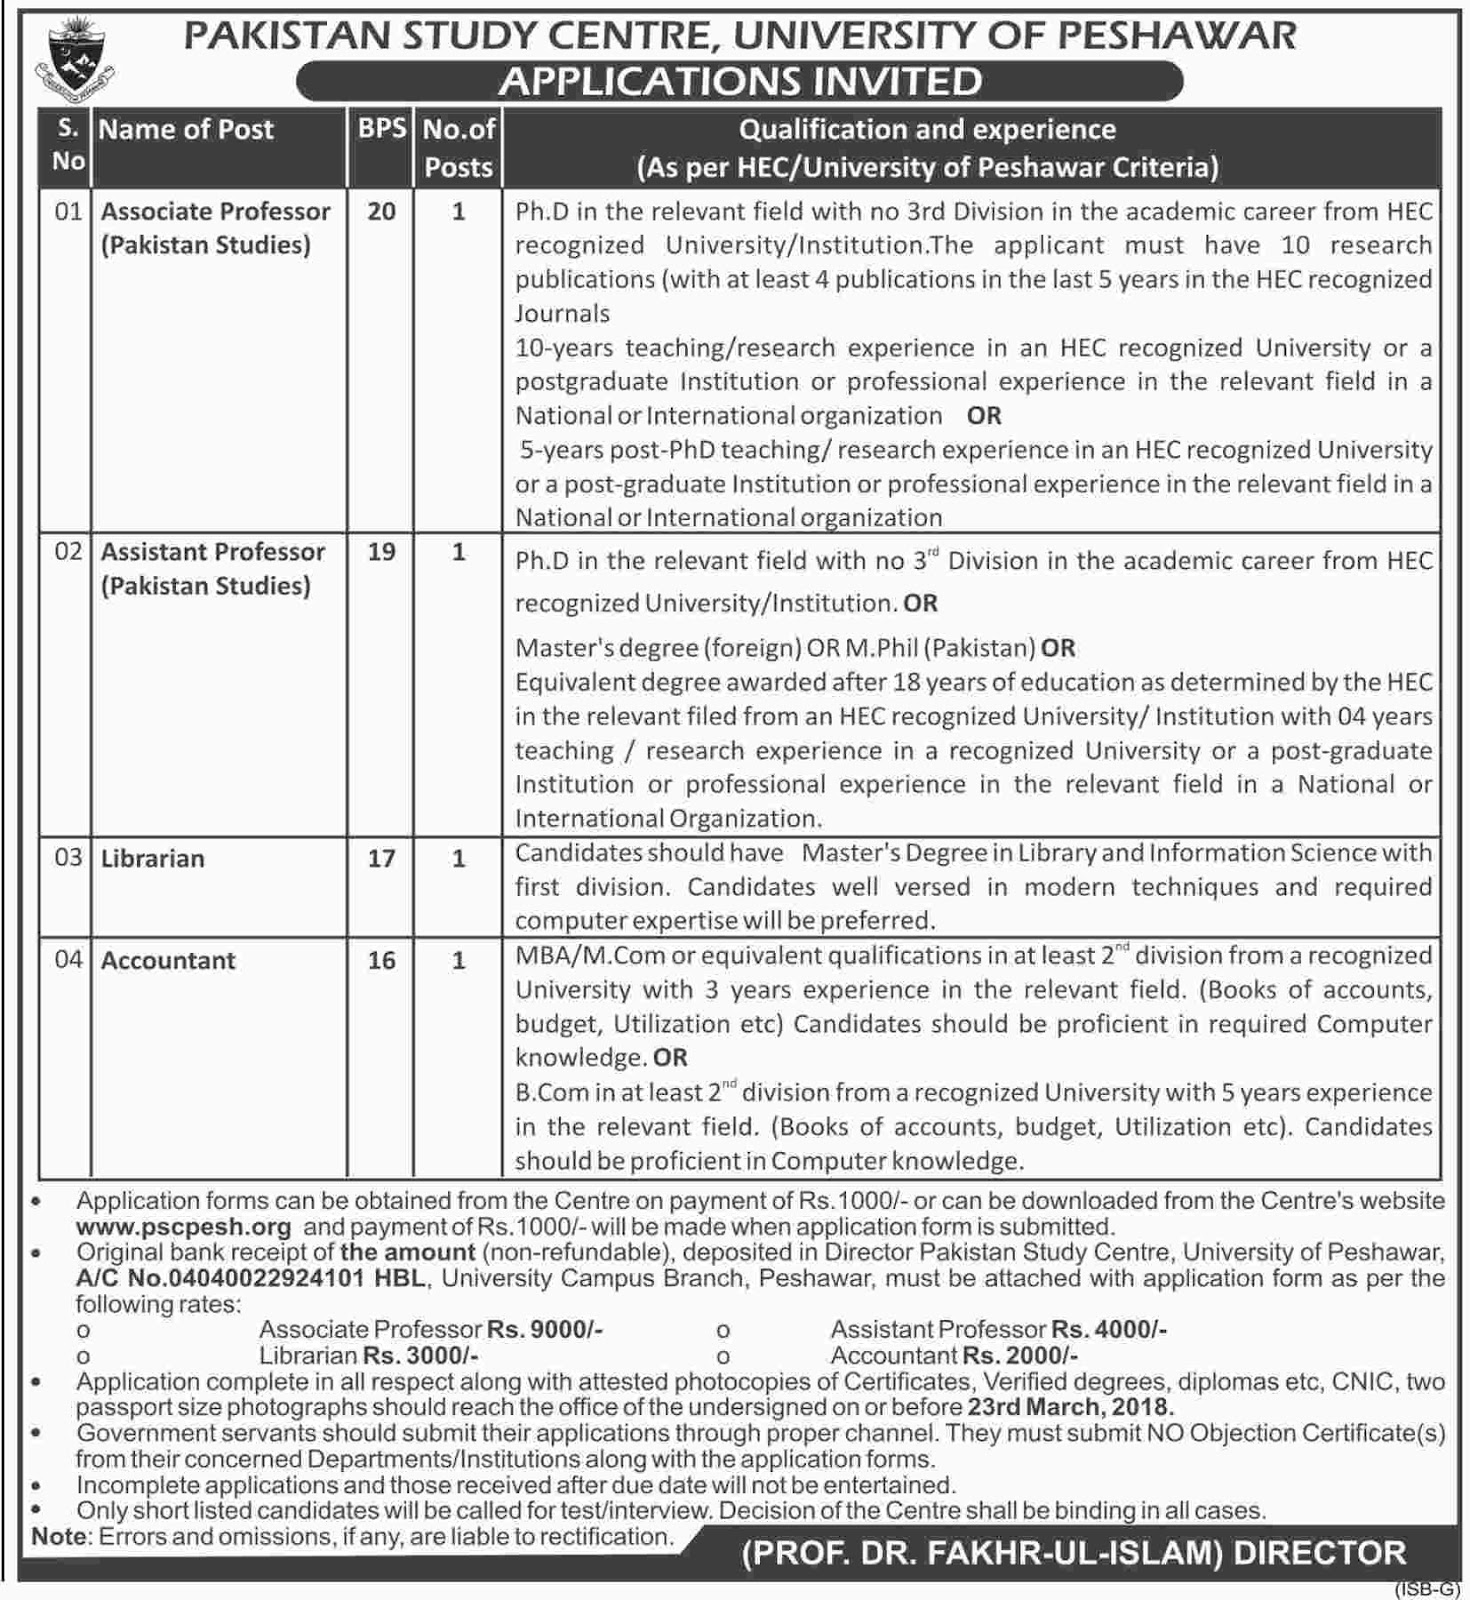 University of Peshawar for Professors, Librarian, Accountant